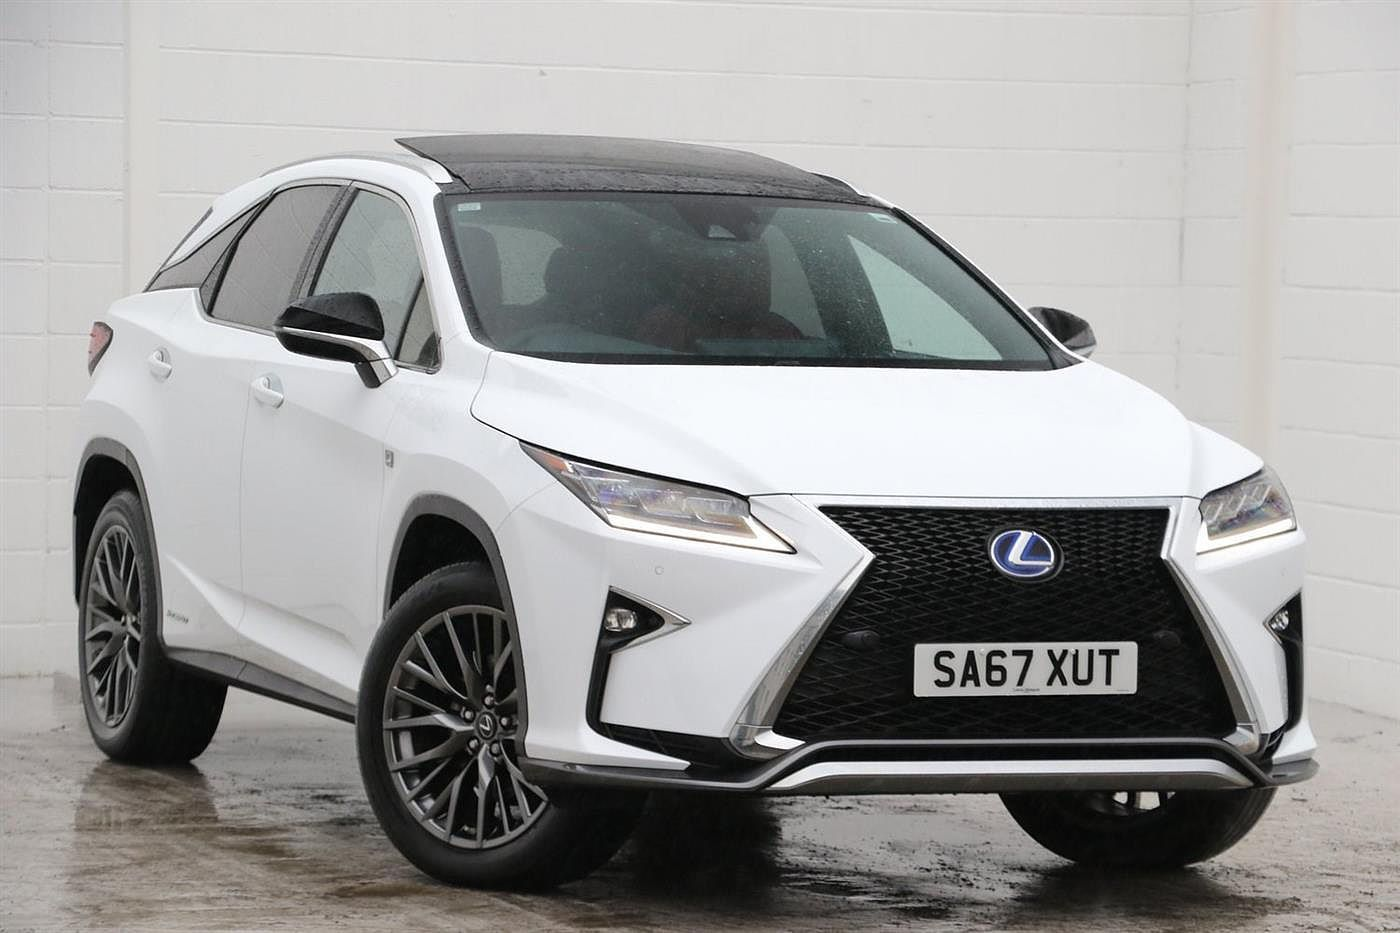 Used 2017 RX Unspecified 450h 3.5 F-Sport Pan Roof